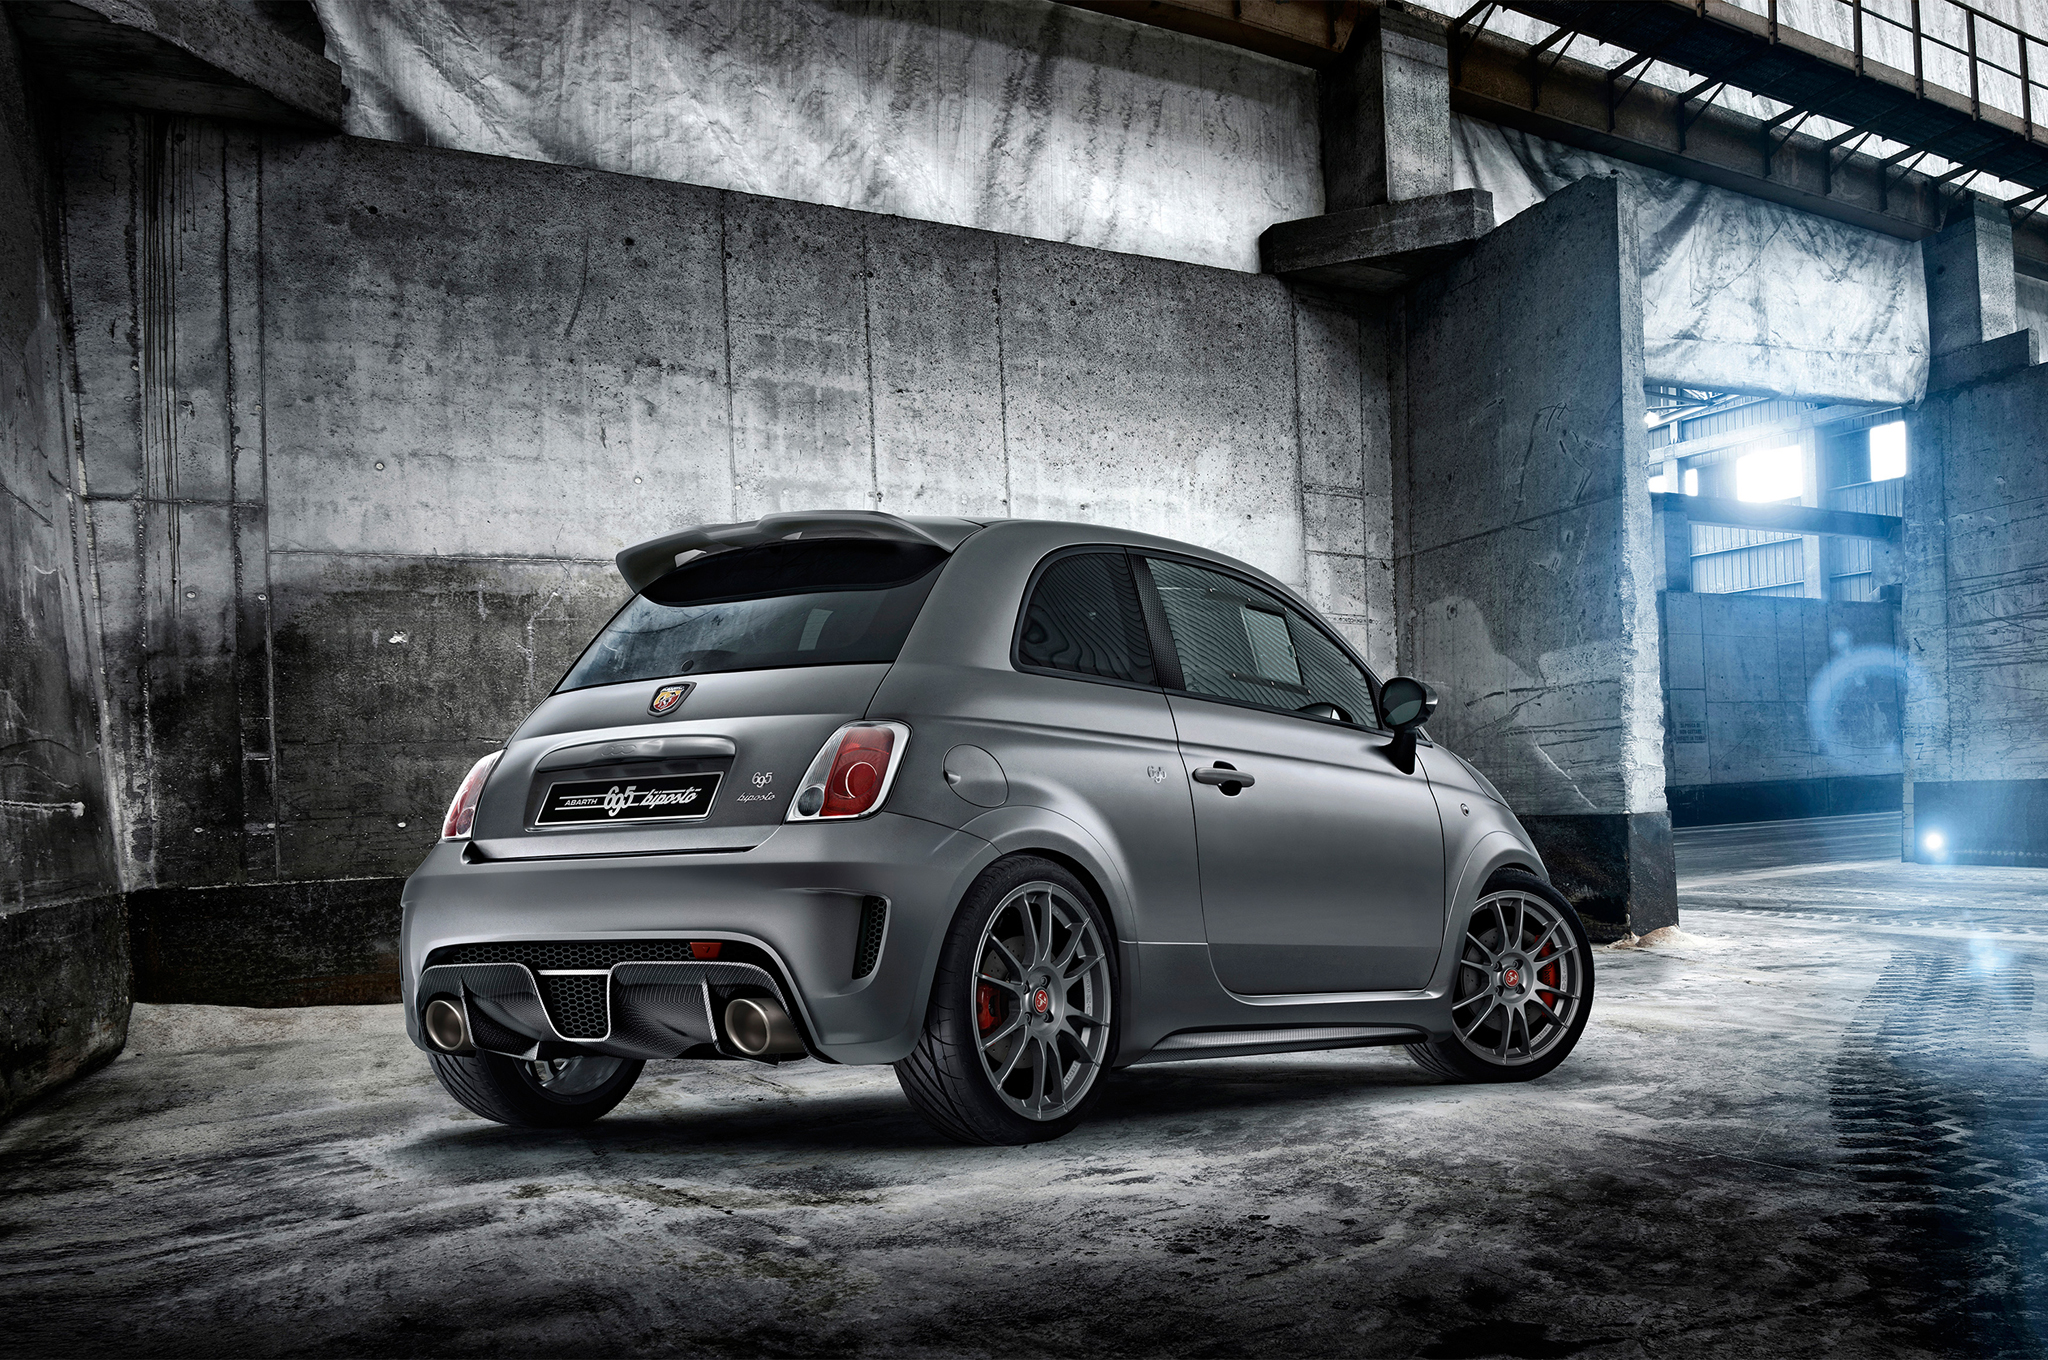 Abarth 695 Biposto is Light, Fast, and Packed with Mods